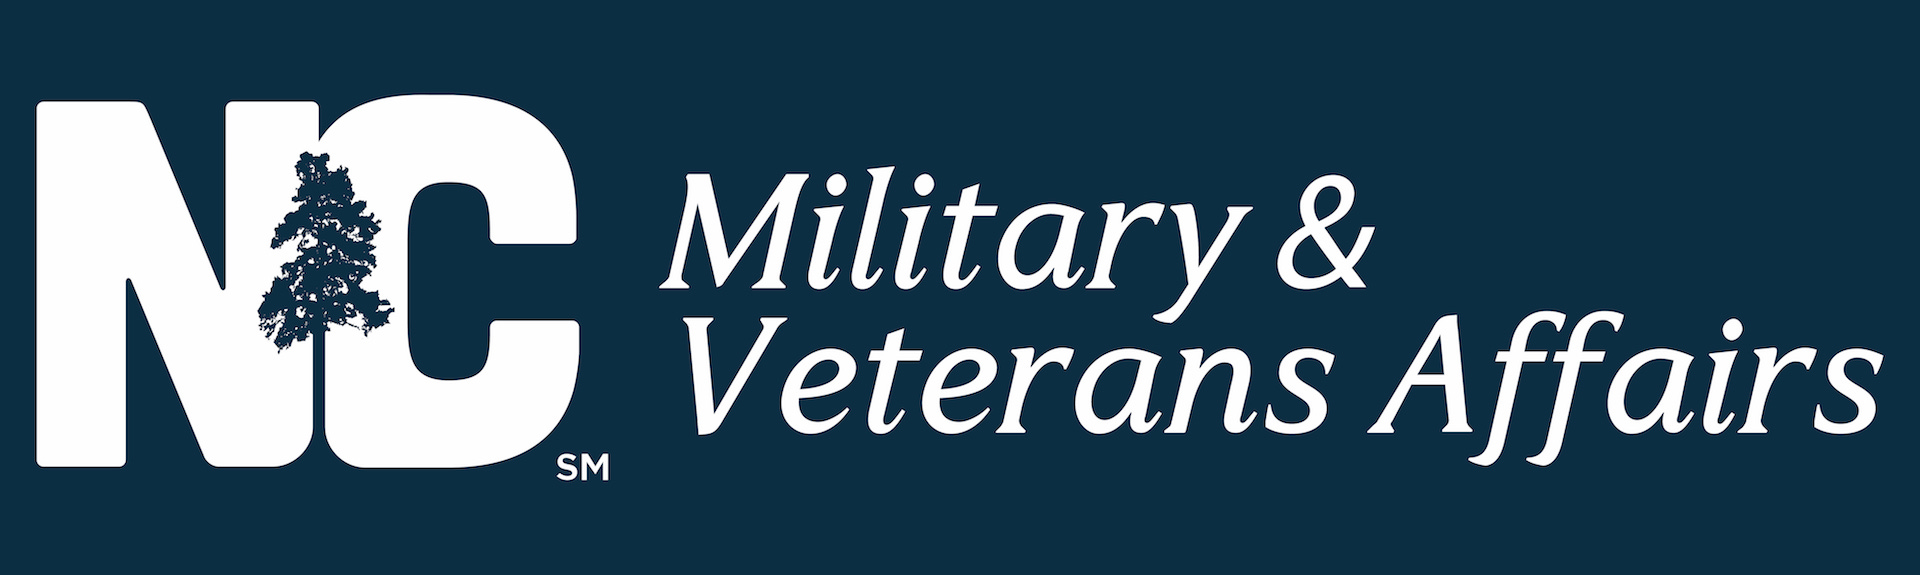 NC Military & Veterans Affairs Logo - Click Here for More Information